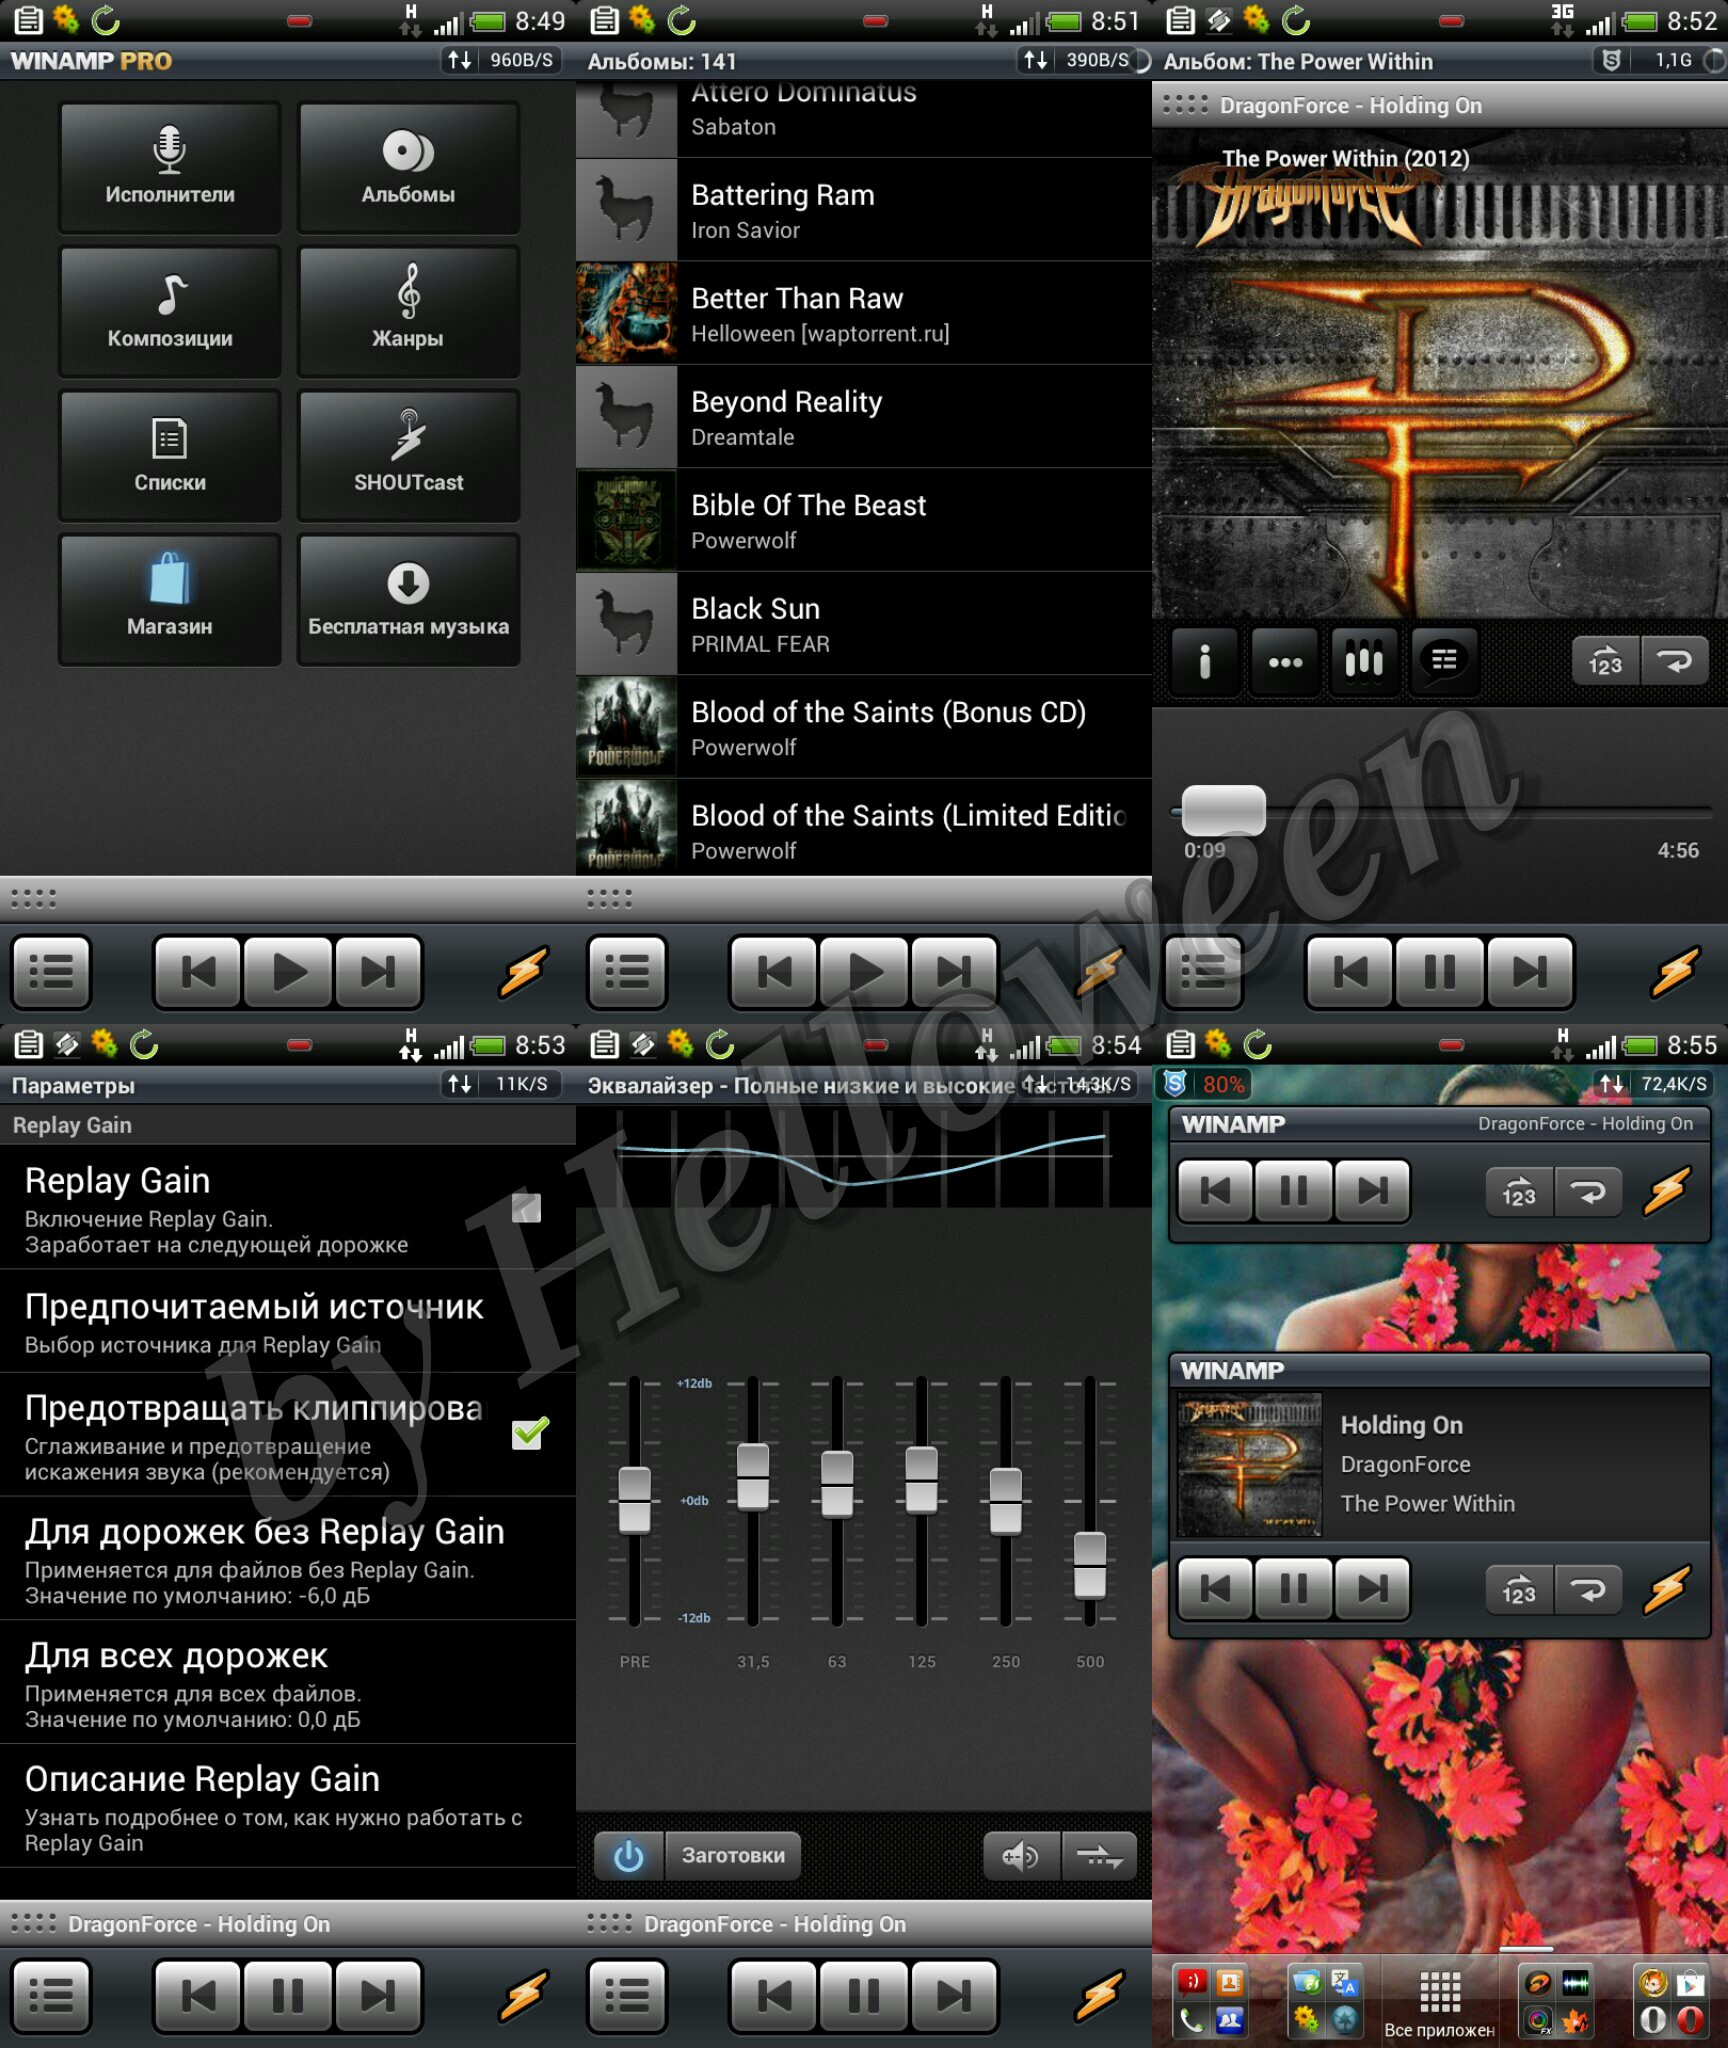 Features of Winamp Pro